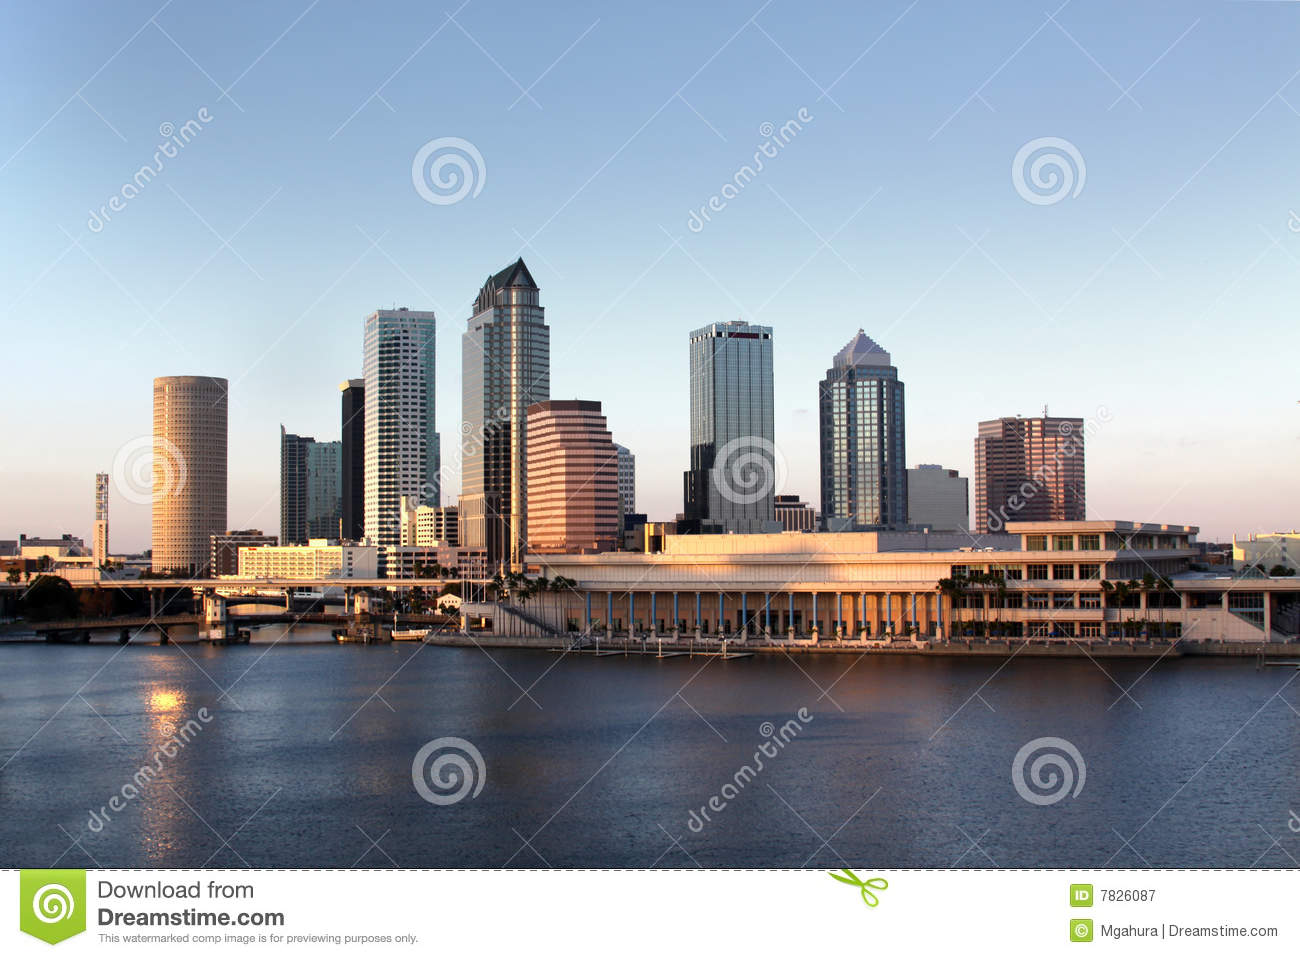 Modern Architecture Tampa modern architecture in of tampa, florida usa royalty free stock